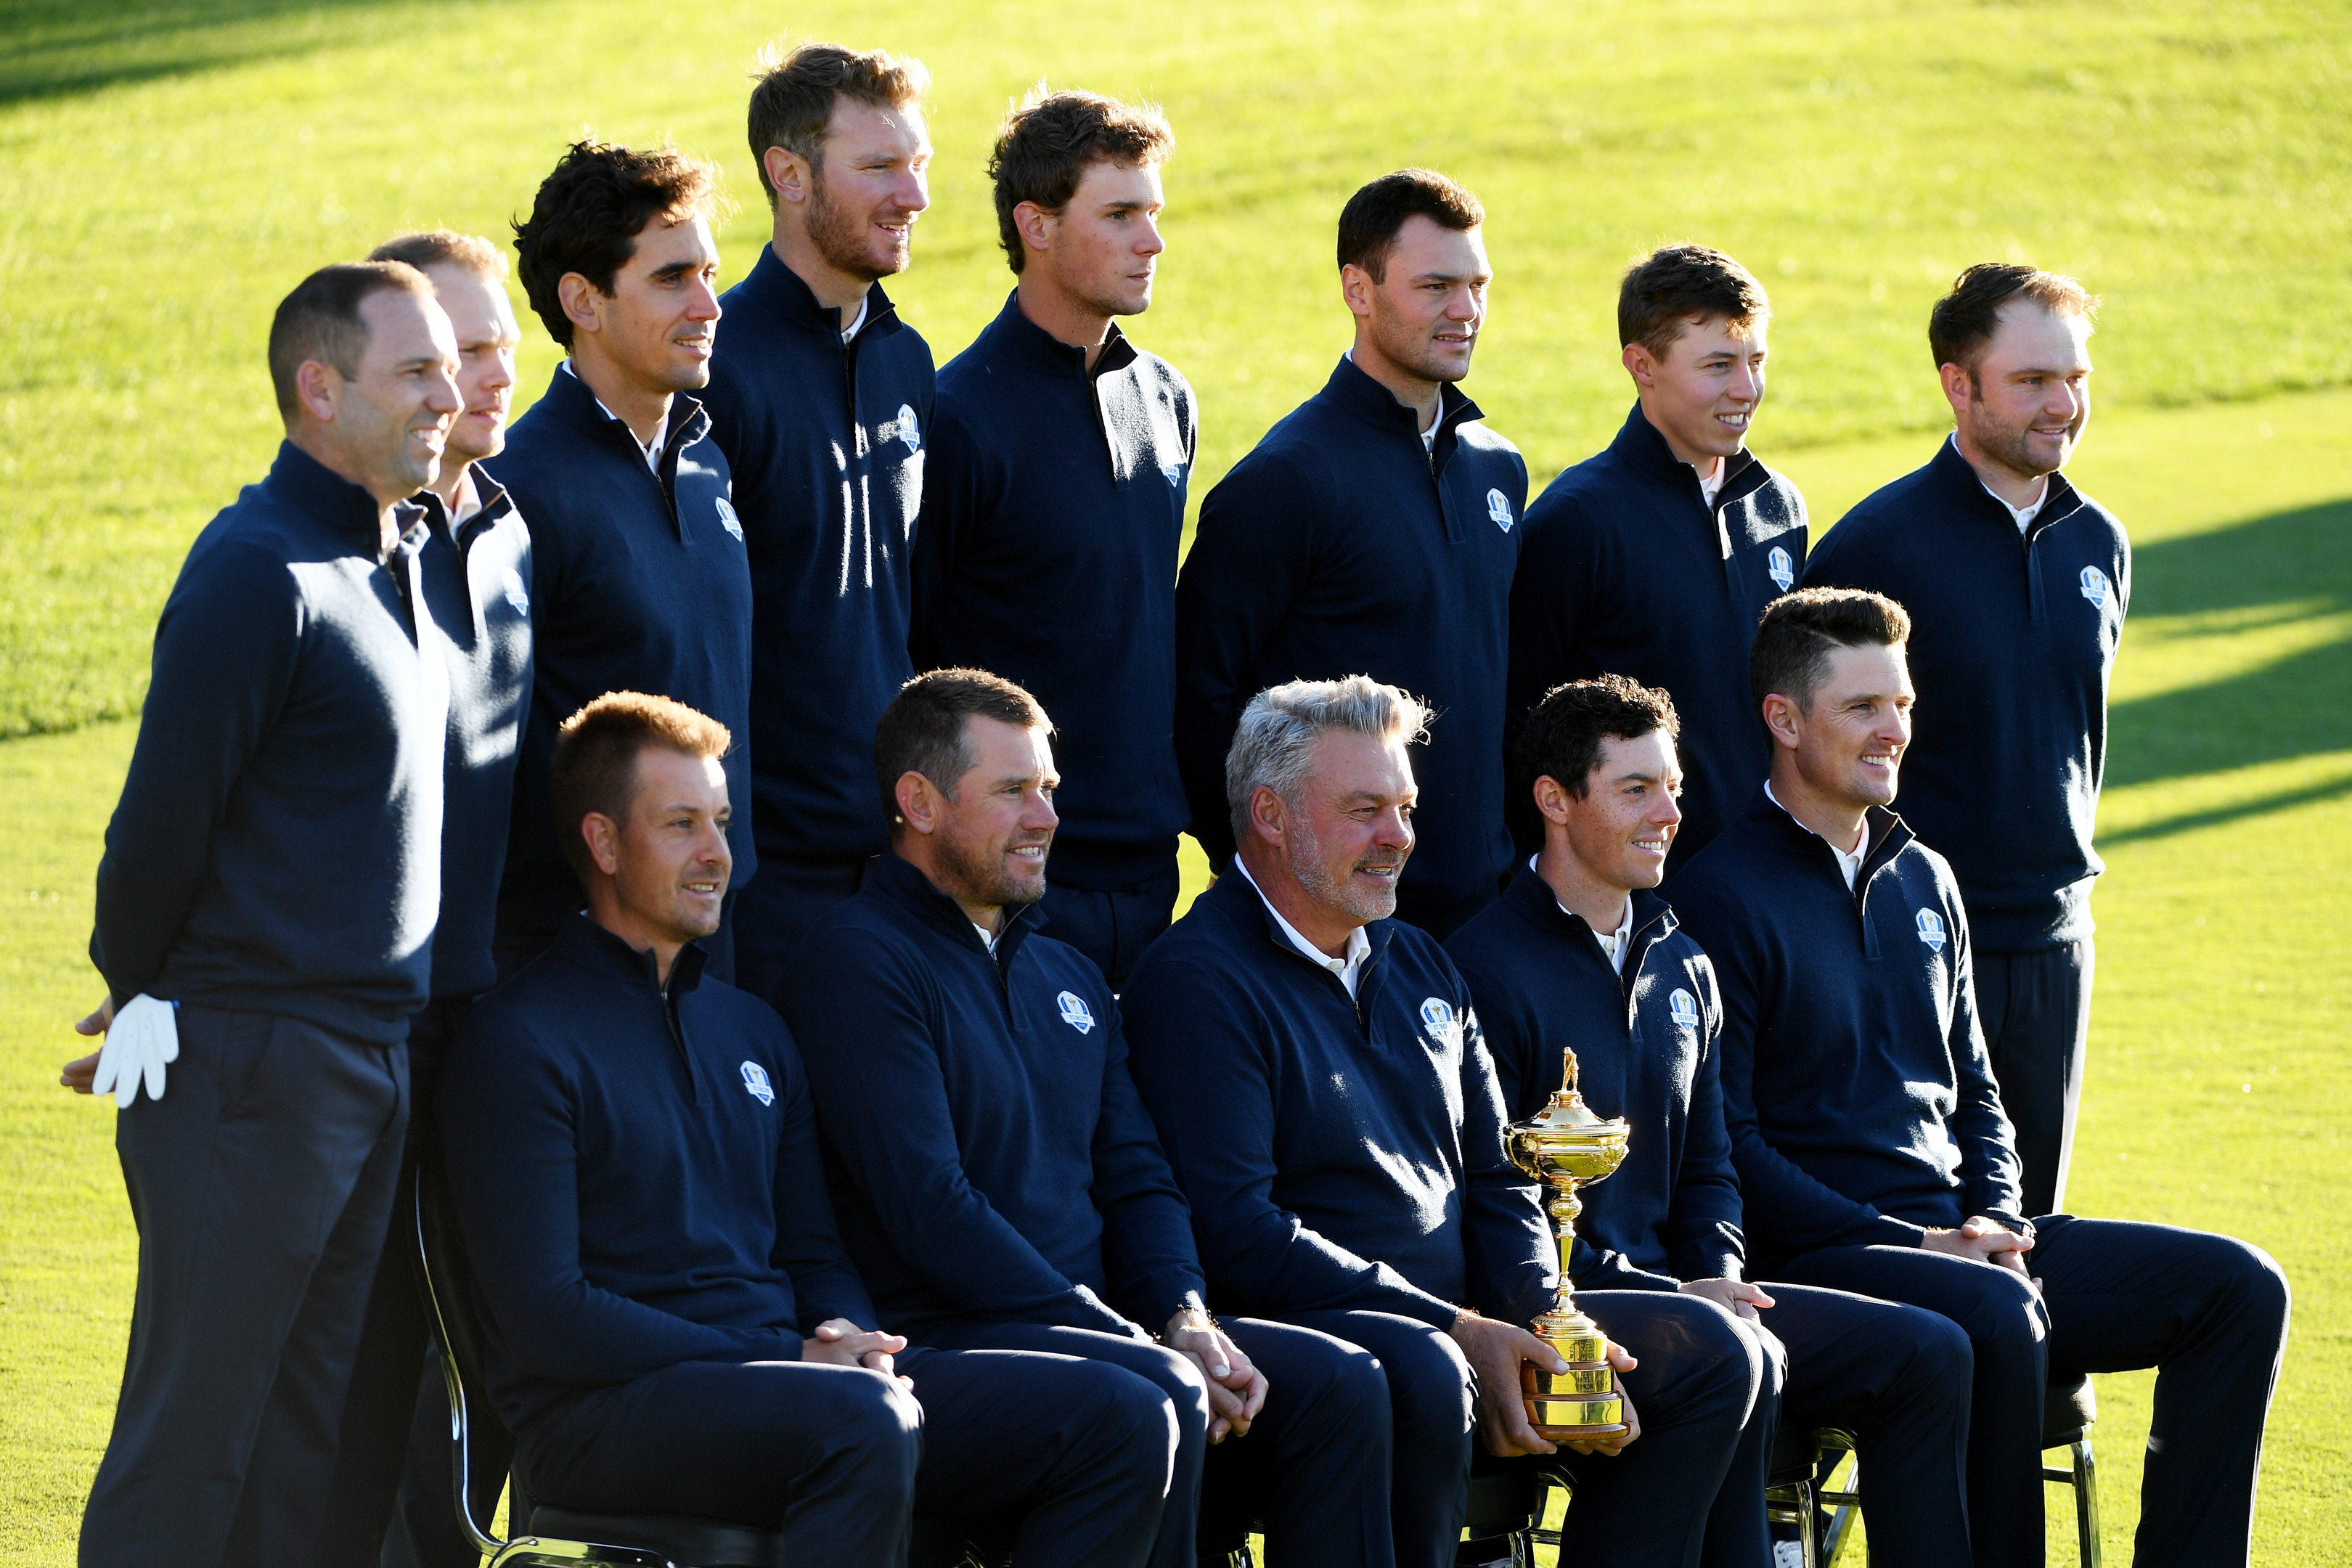 Europe at their official team picture session on the first day of practice for the Ryder Cup at Hazeltine,